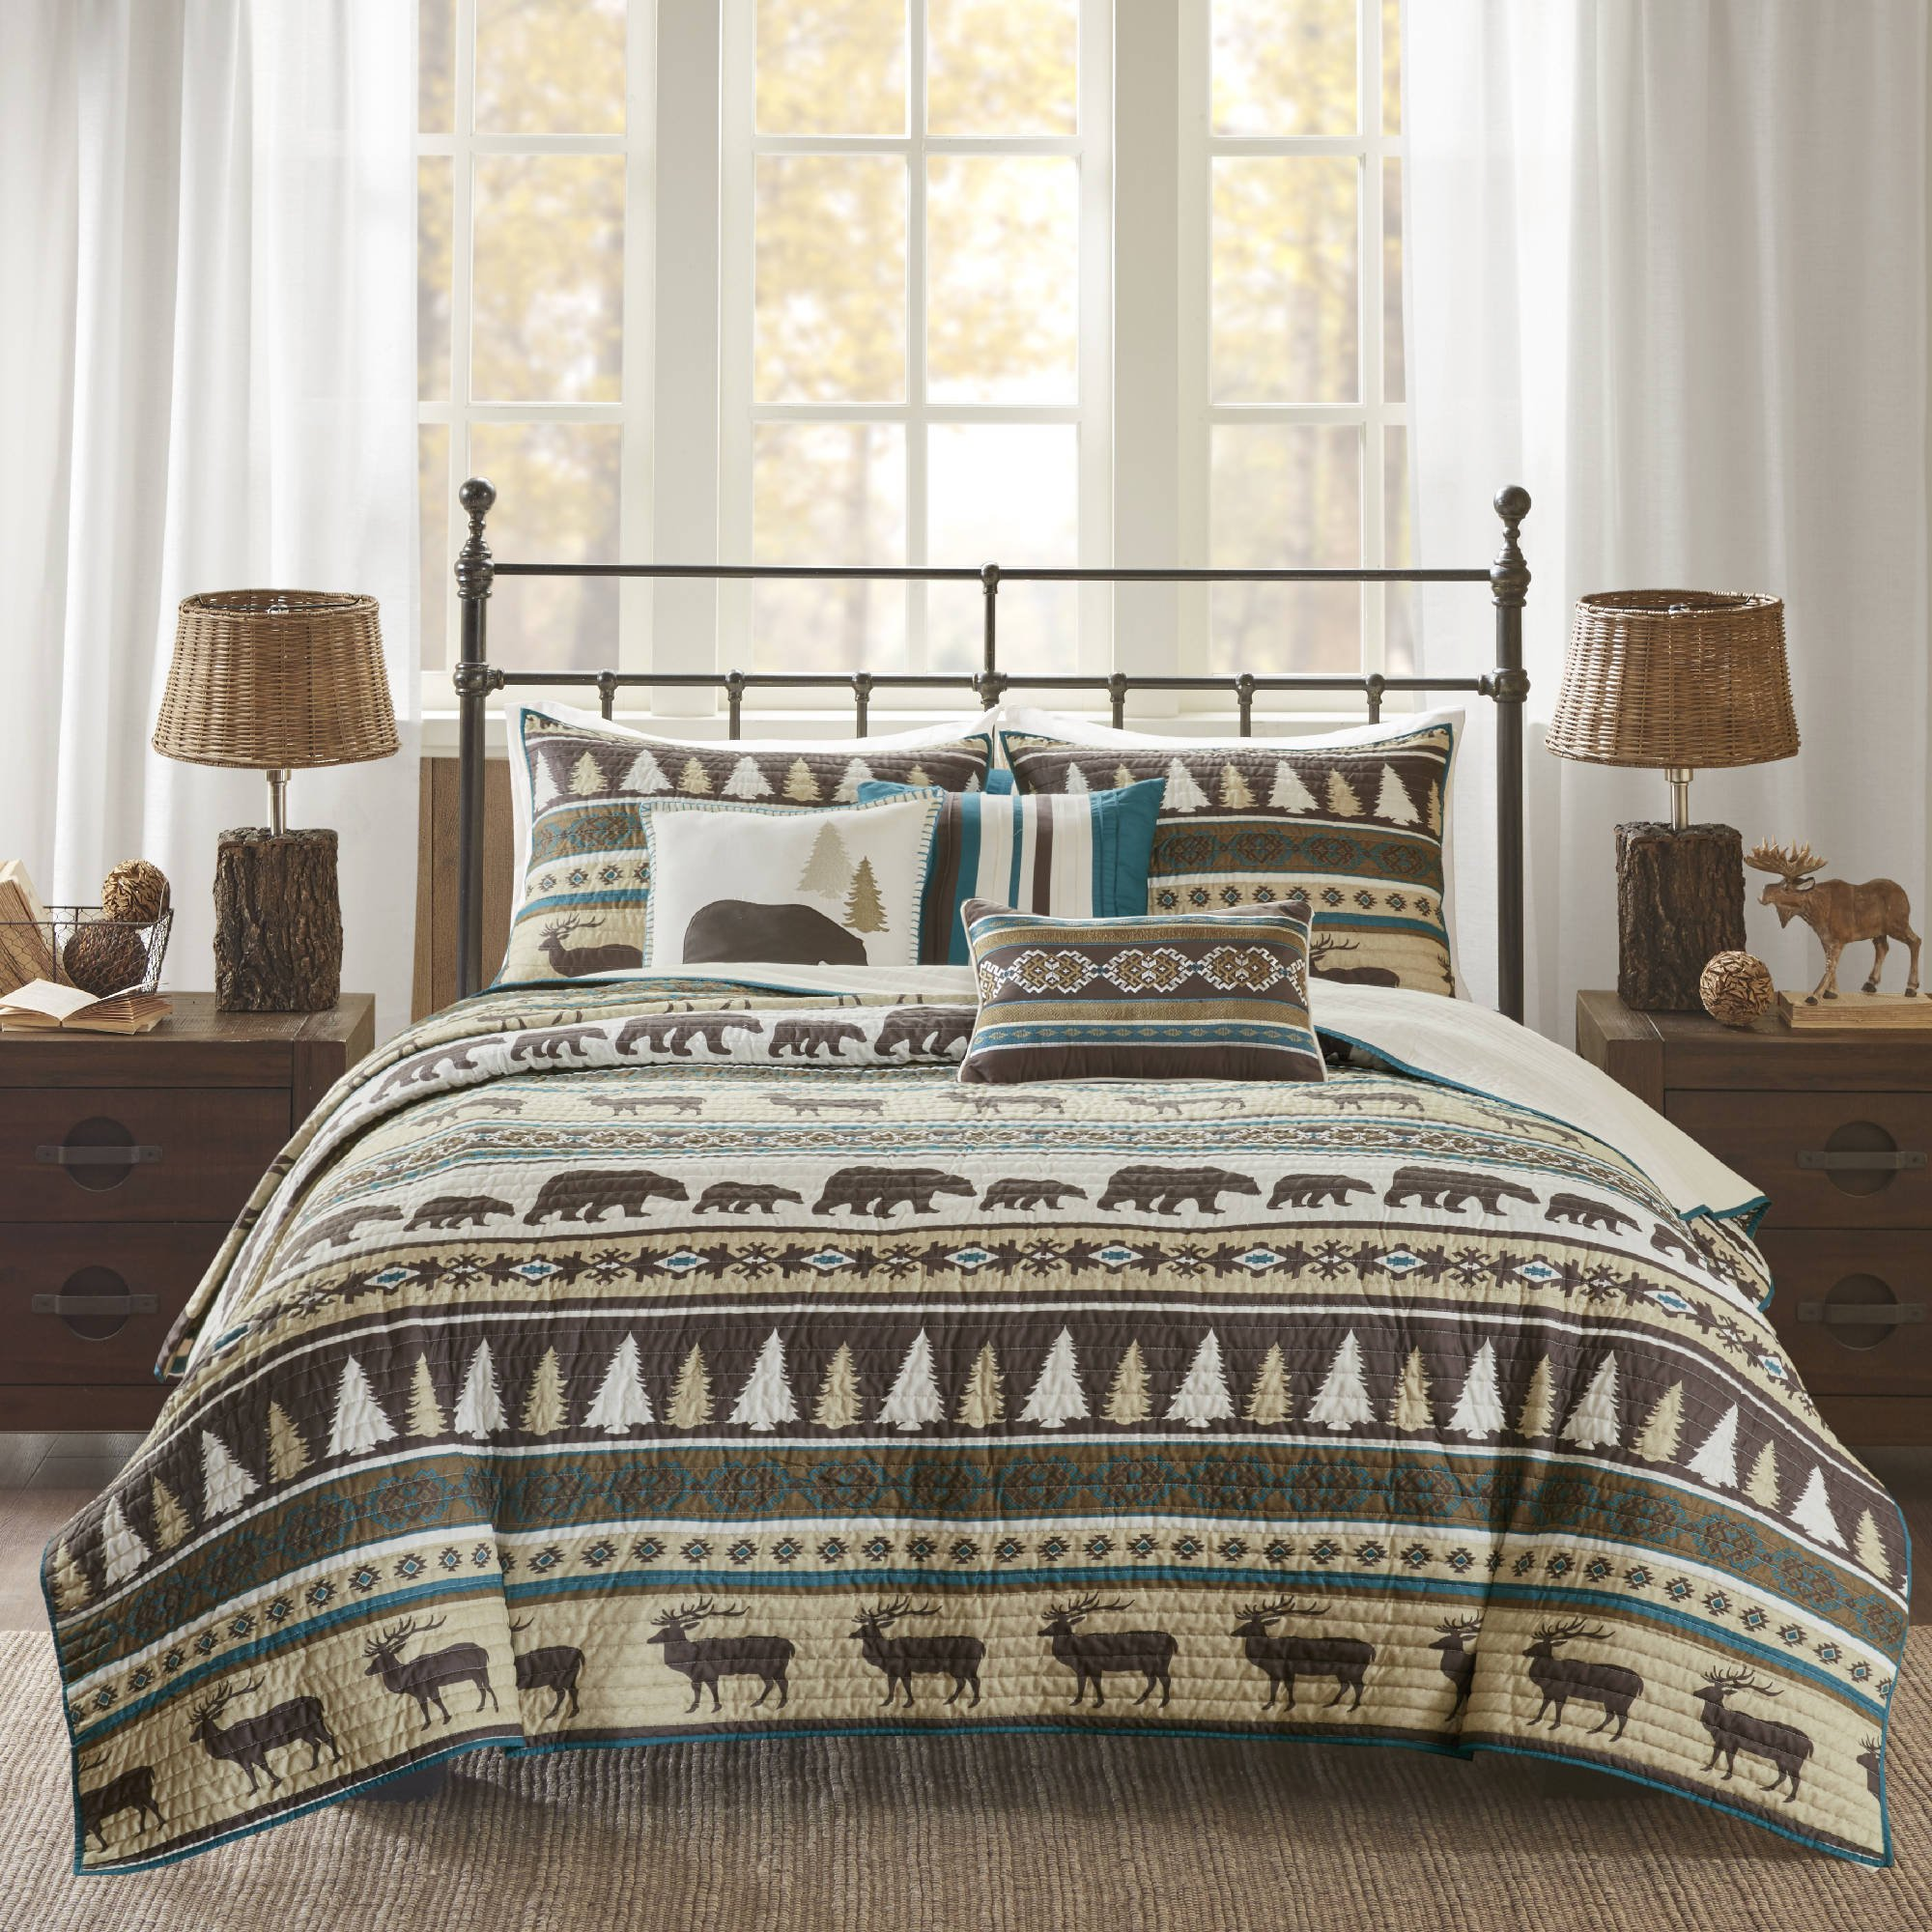 6 Piece Brown White Stripe King/Cal King Coverlet Set, Lodge Animal Print Themed Bedding, Cabin Country Tartan Pattern Cottage Woods Bears Deer Pine Trees Horizontal Diamond Patterns,Polyester by D&A (Image #1)